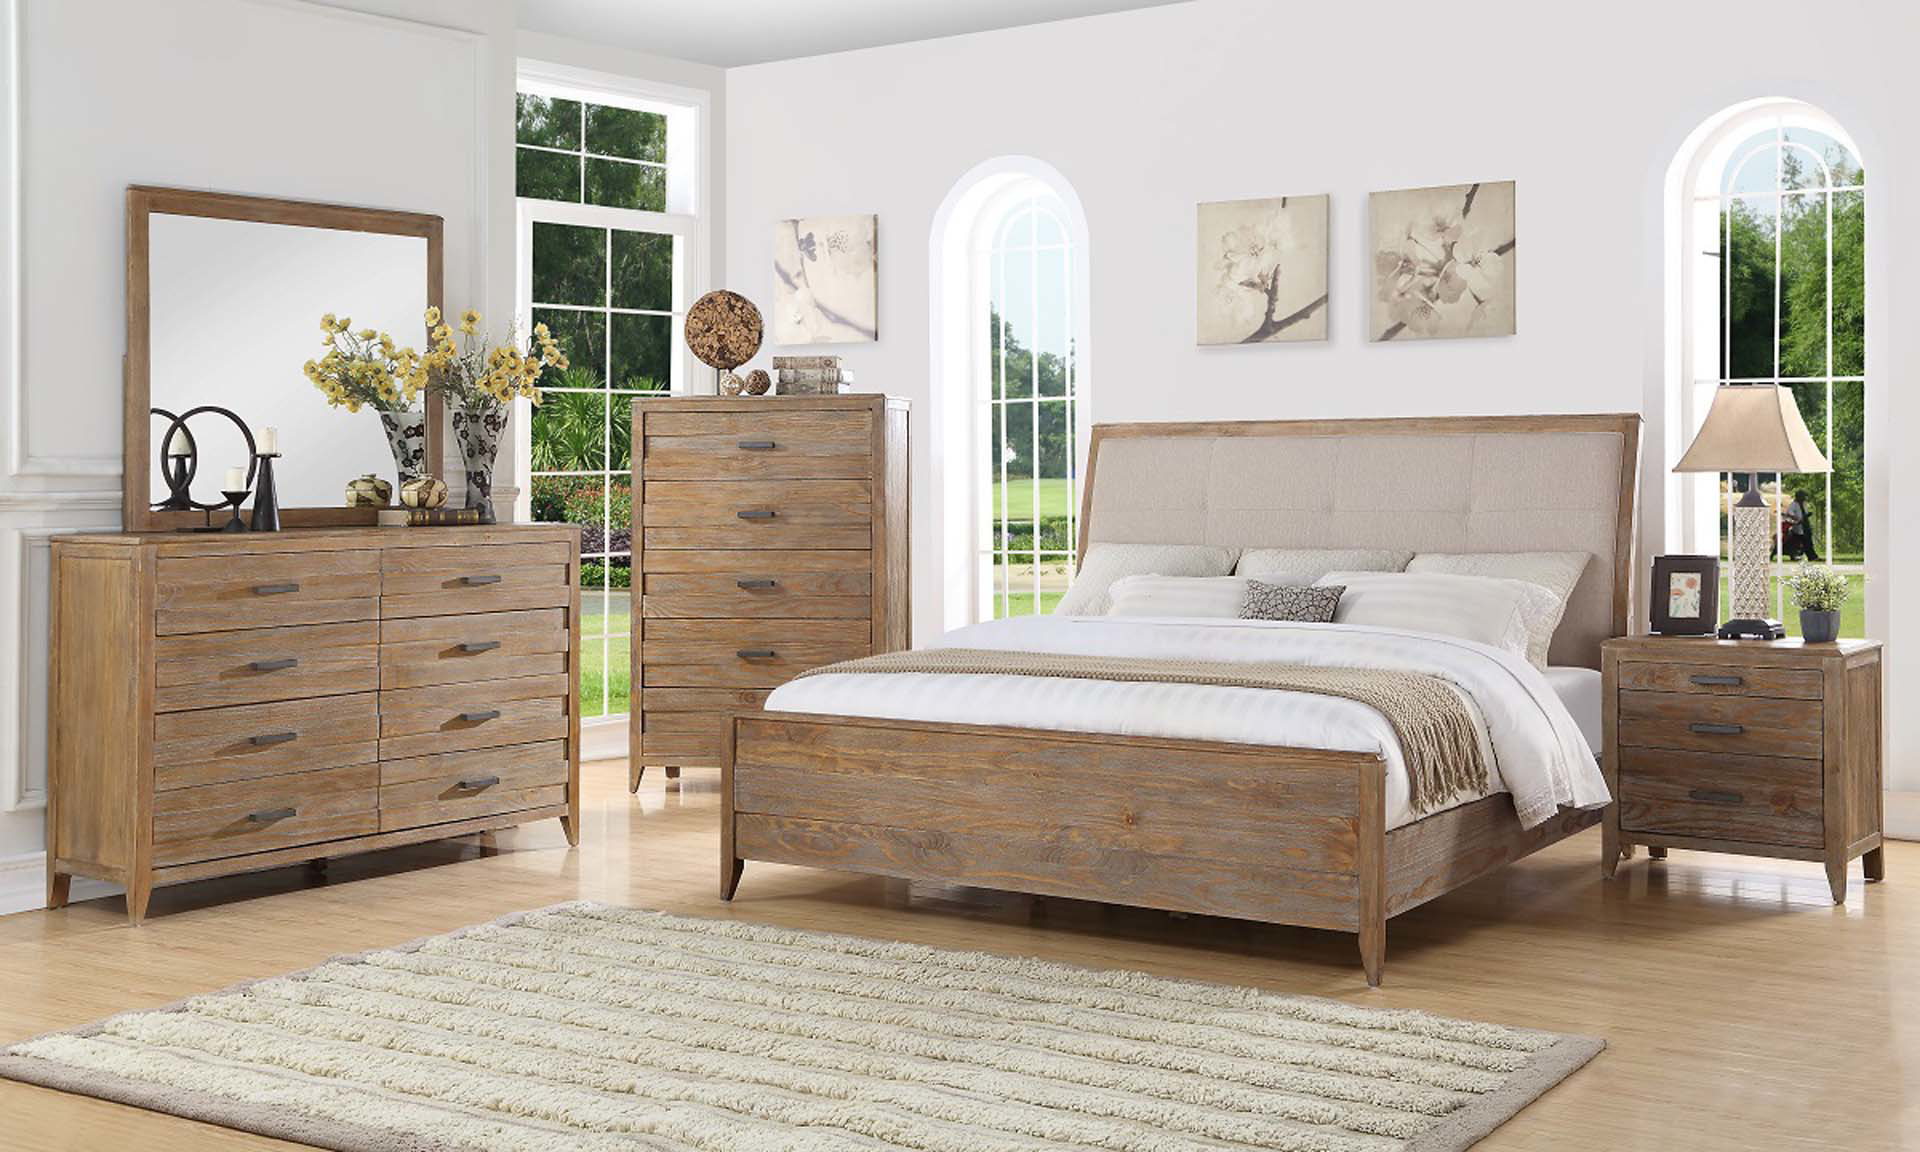 Torino Upholstered Rustic Pine Queen Sleigh Bed